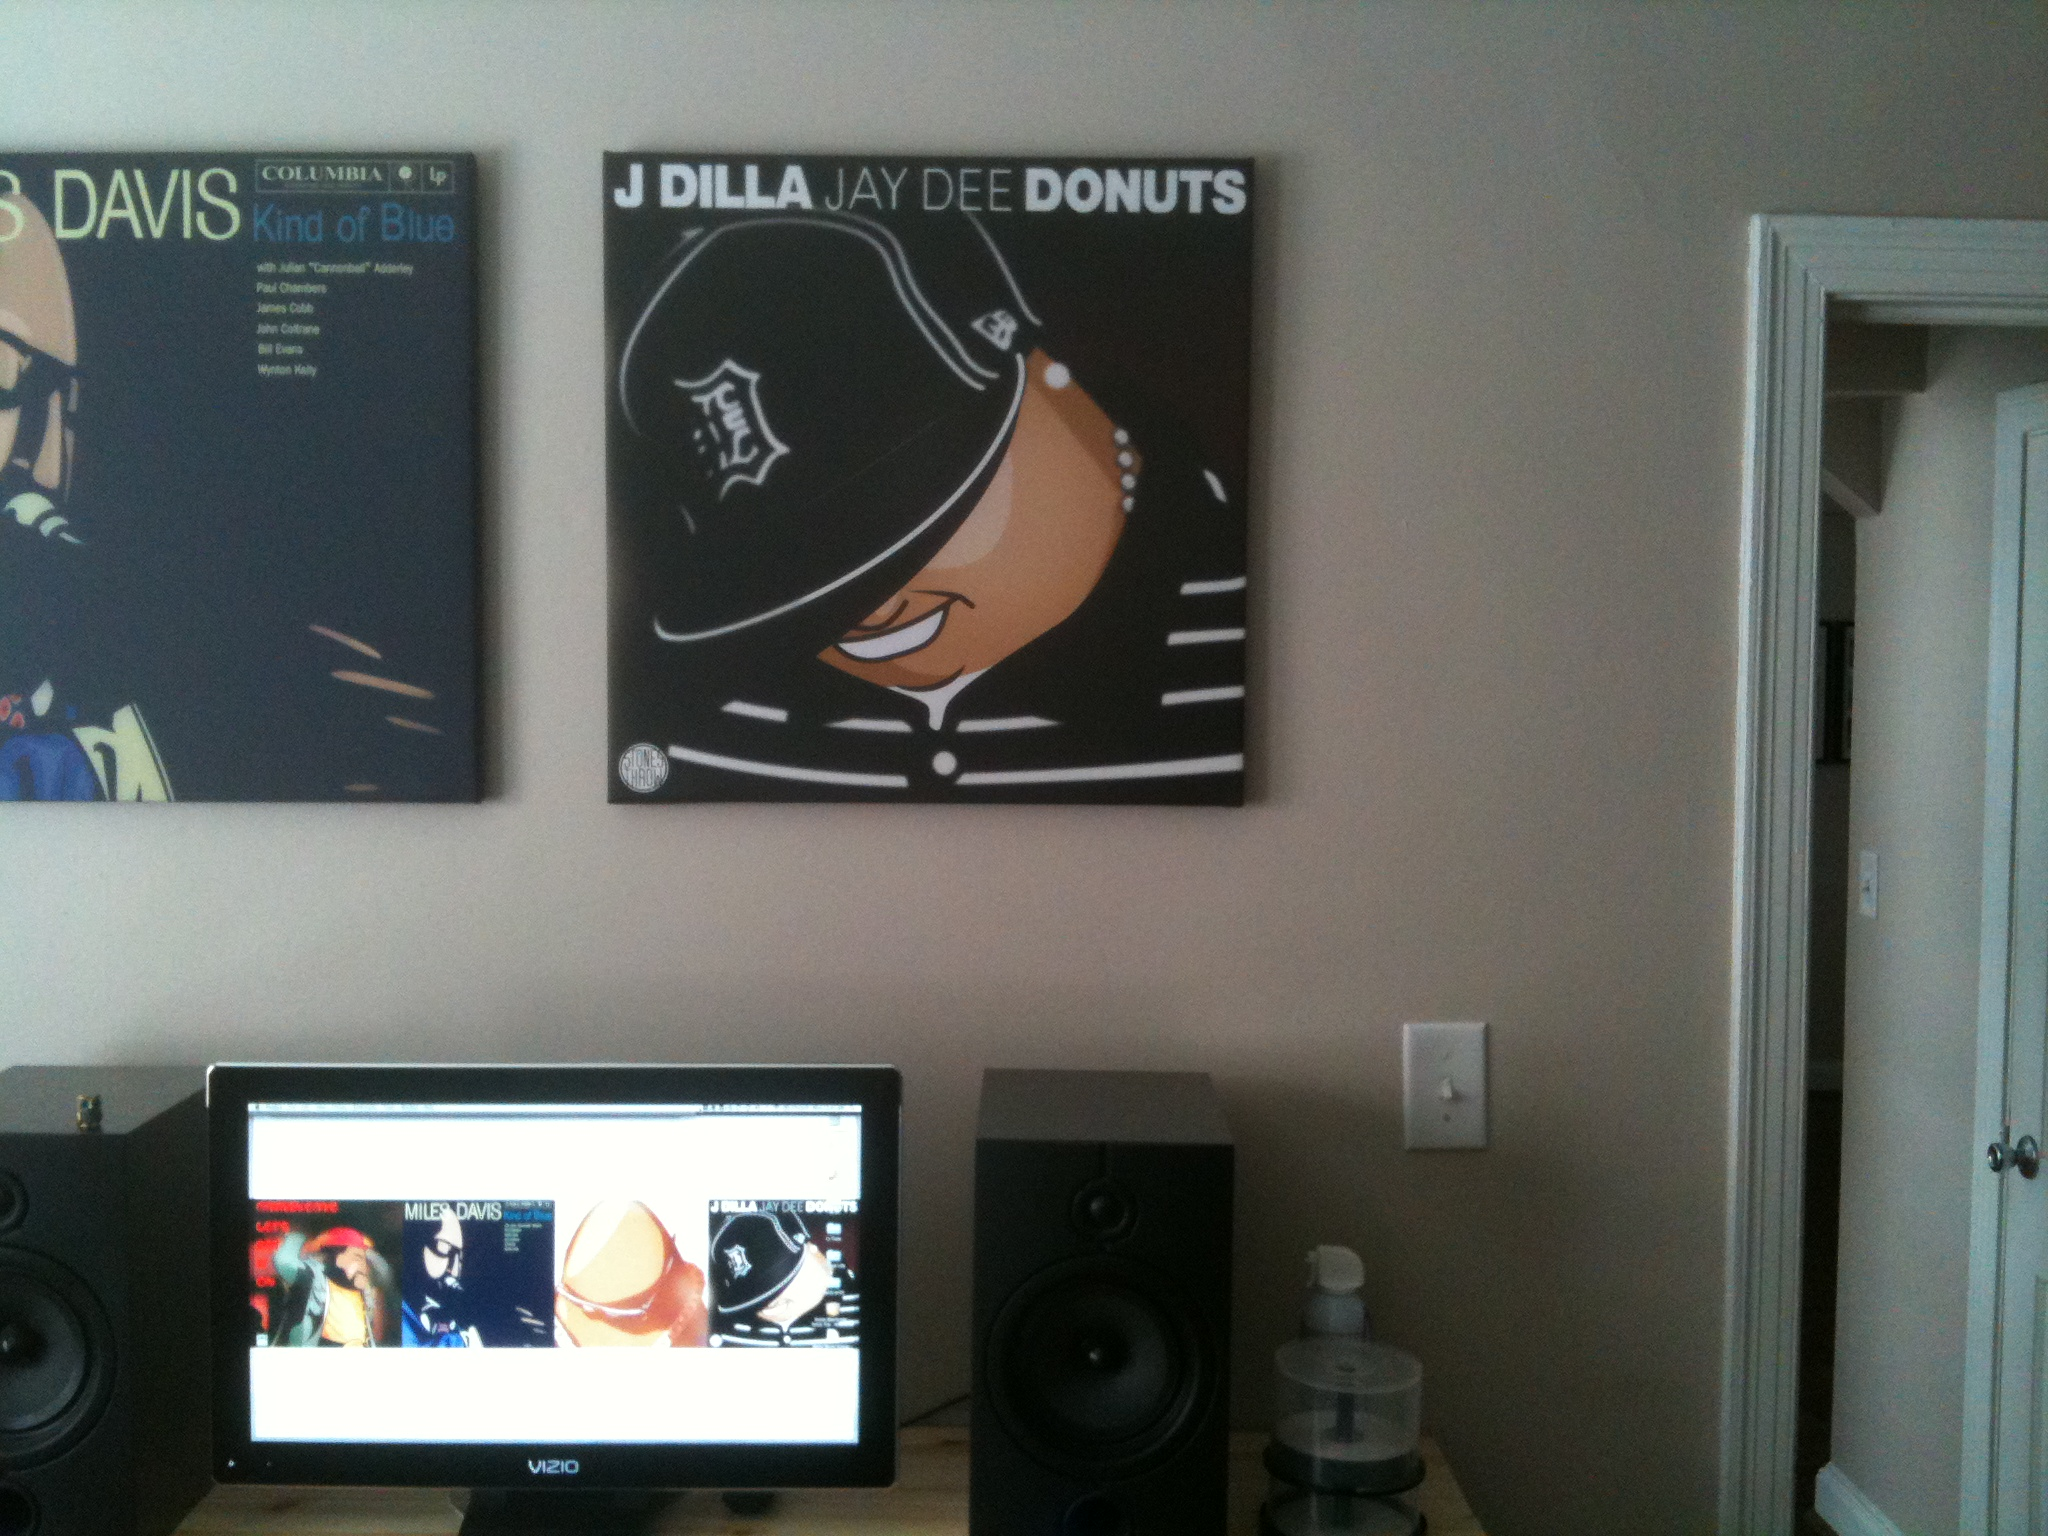 Dilla Donuts Dilla Donuts Album Art on Wall